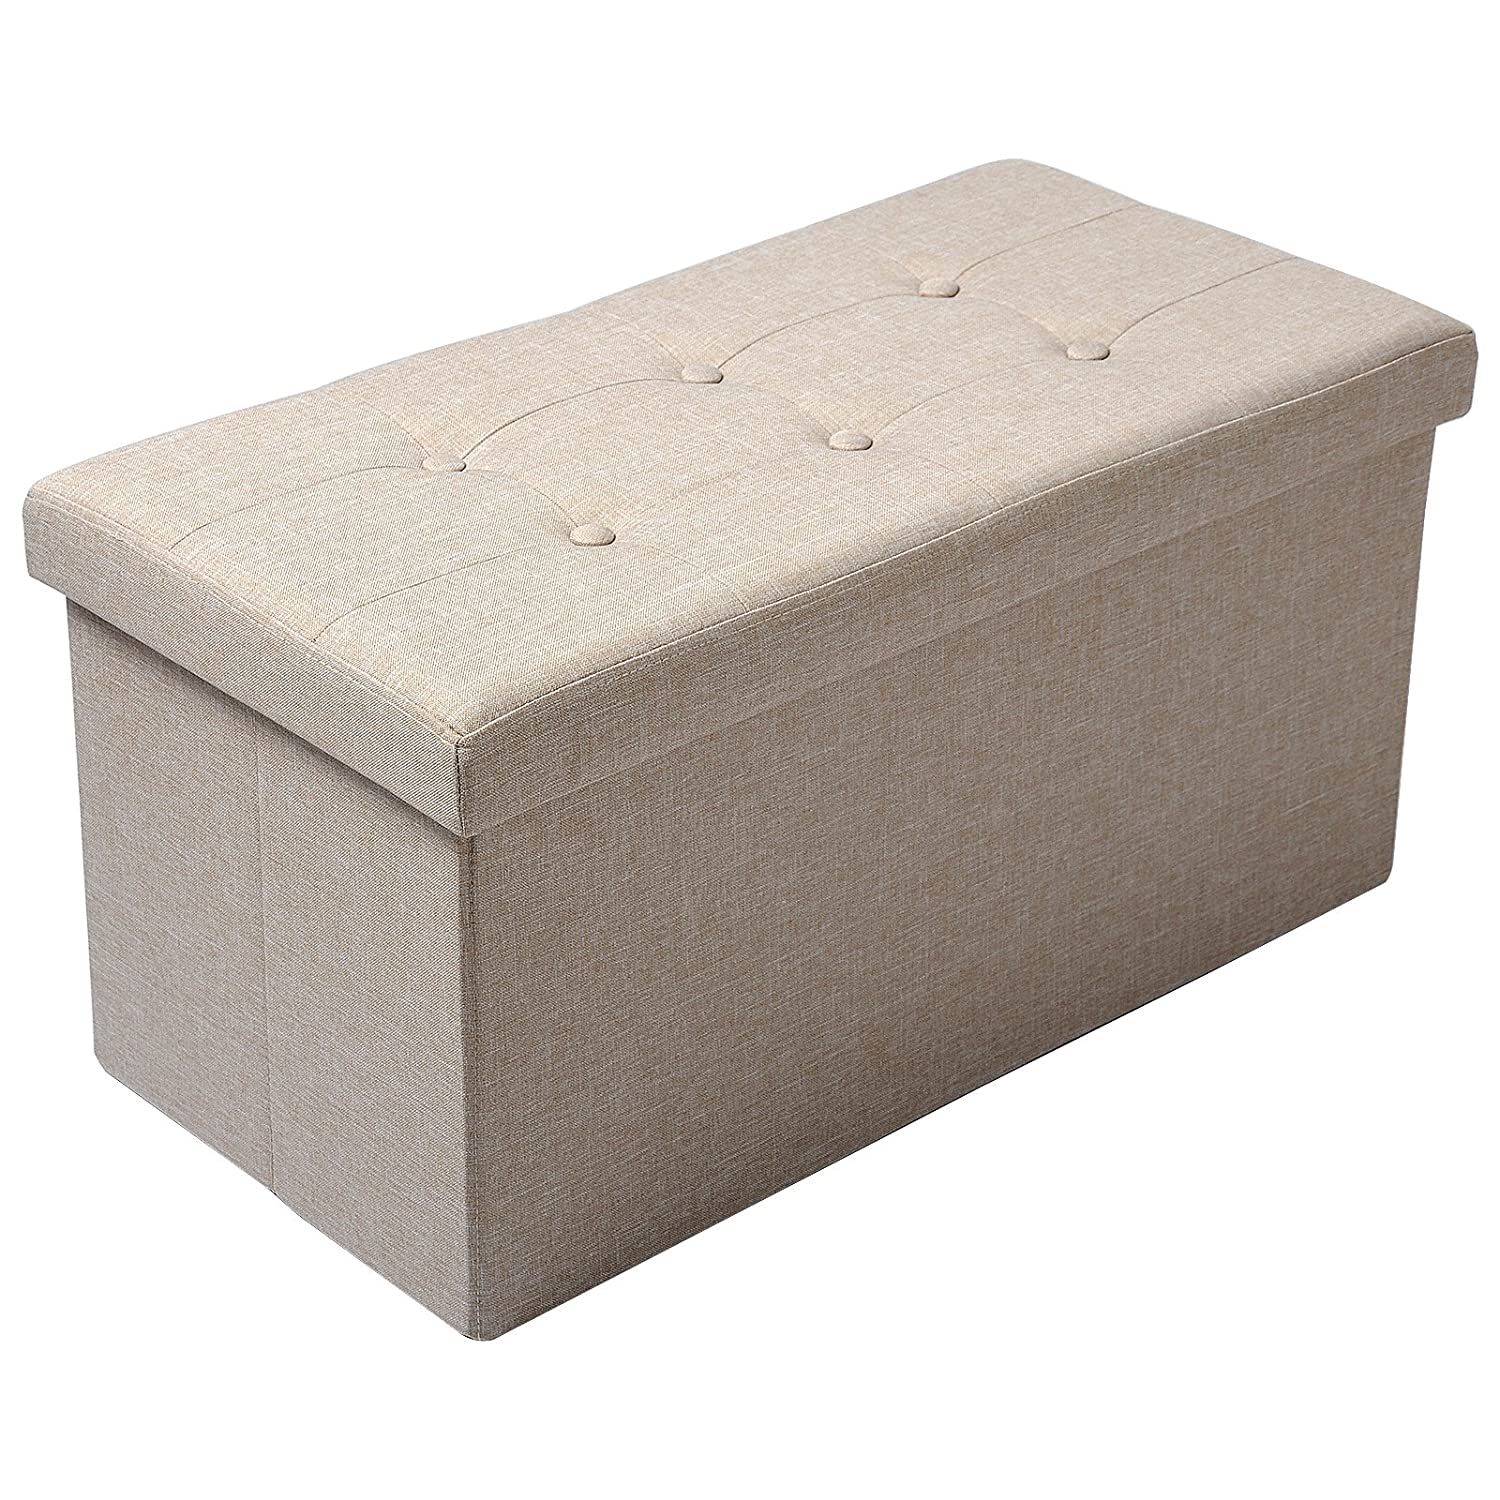 Ottomans Lucia Storage Chest Grey Fabric: 1 Seater Luxury Crushed Velvet Fabric With Diamantes